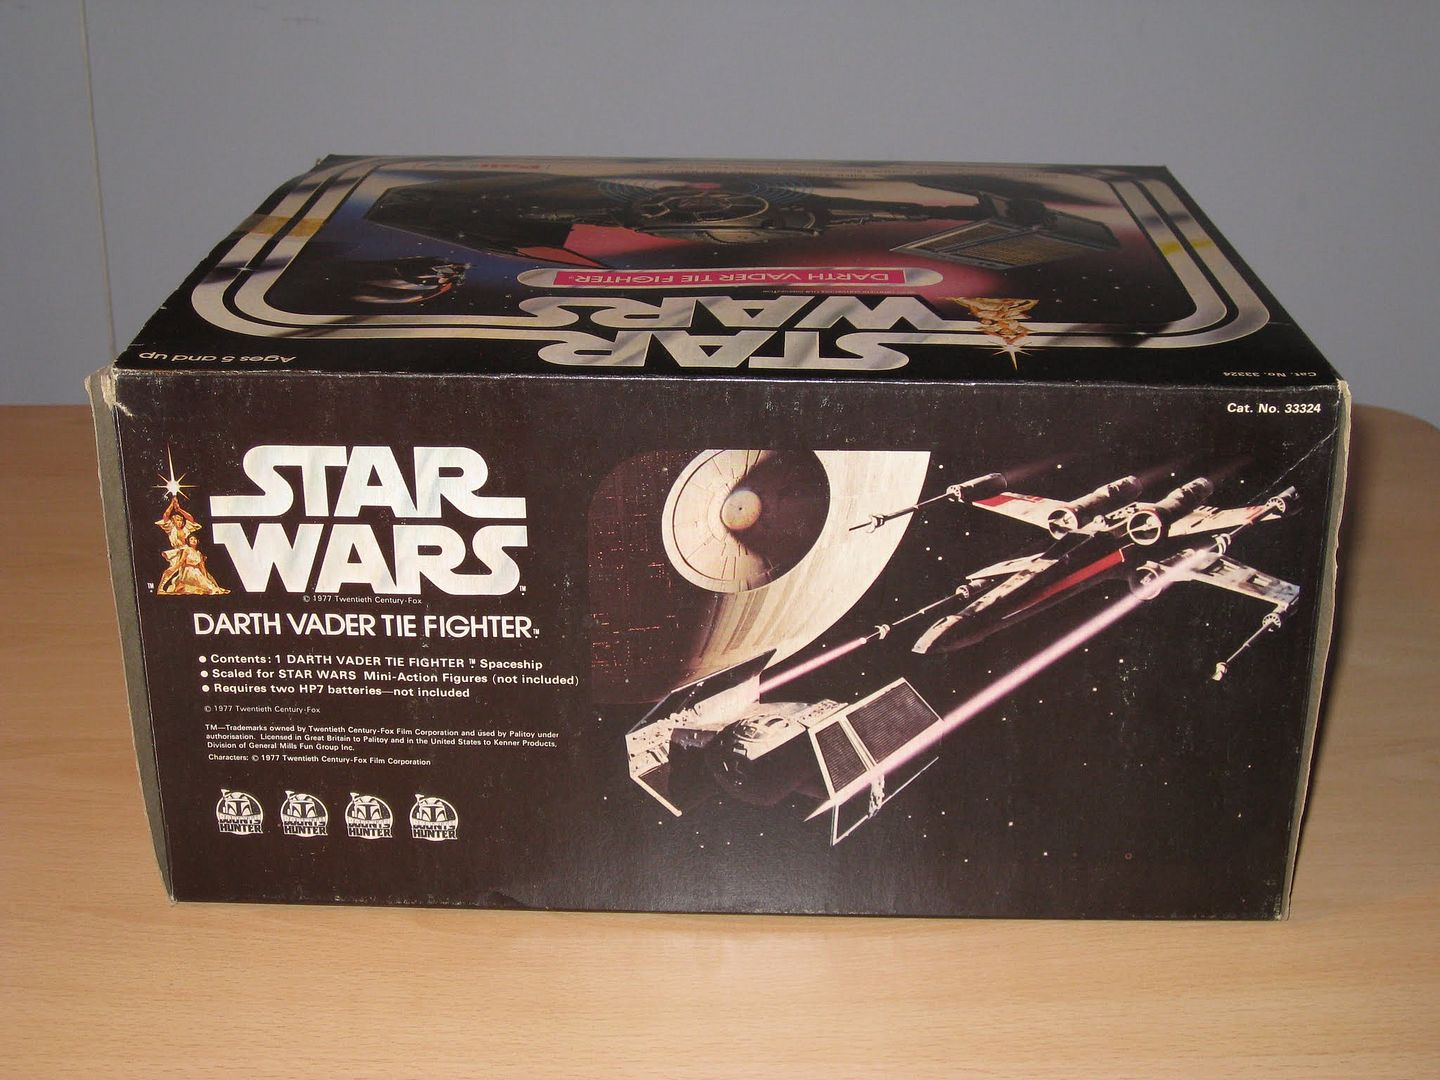 PROJECT OUTSIDE THE BOX - Star Wars Vehicles, Playsets, Mini Rigs & other boxed products  - Page 7 Sw_Darth_Vader_tie_fighter_anh_Palitoy028_zpsabef8cb2